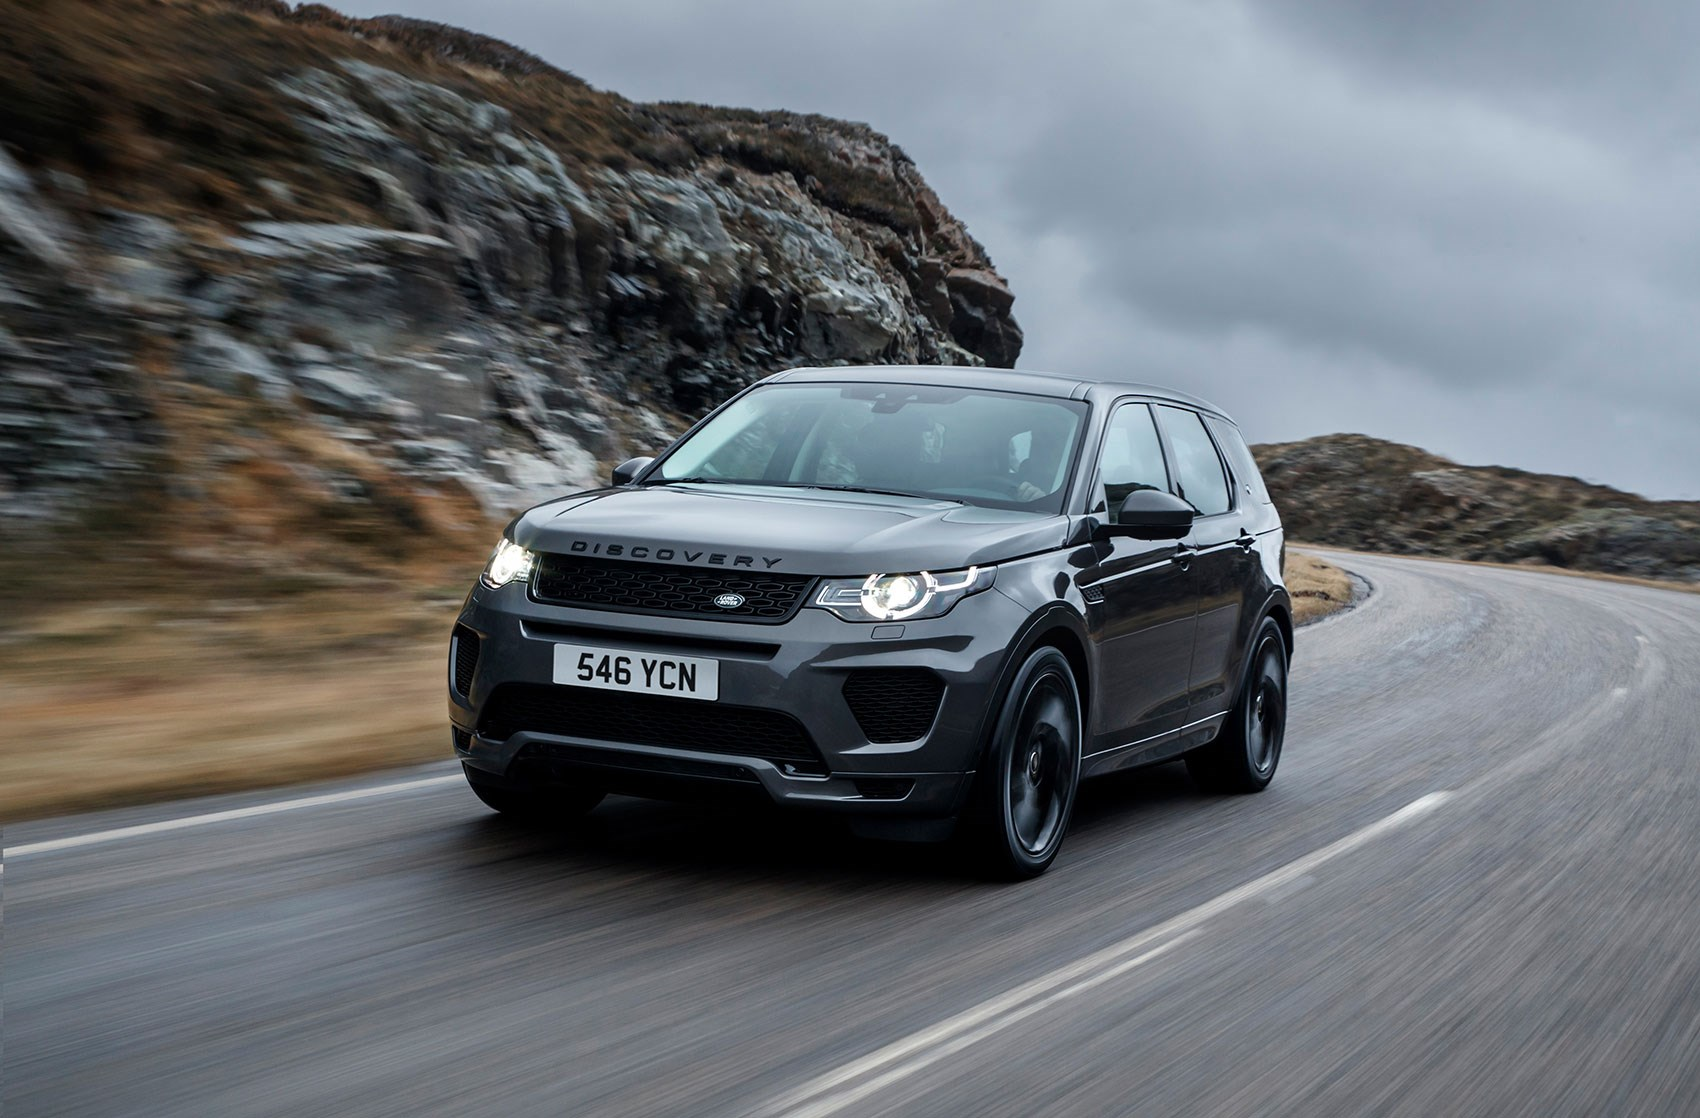 2018 land rover evoque colors.  land 2018 model year land rover discovery sport tough and more powerful  choose from 237bhp petrol or diesel power with ingenium engines throughout land rover evoque colors e